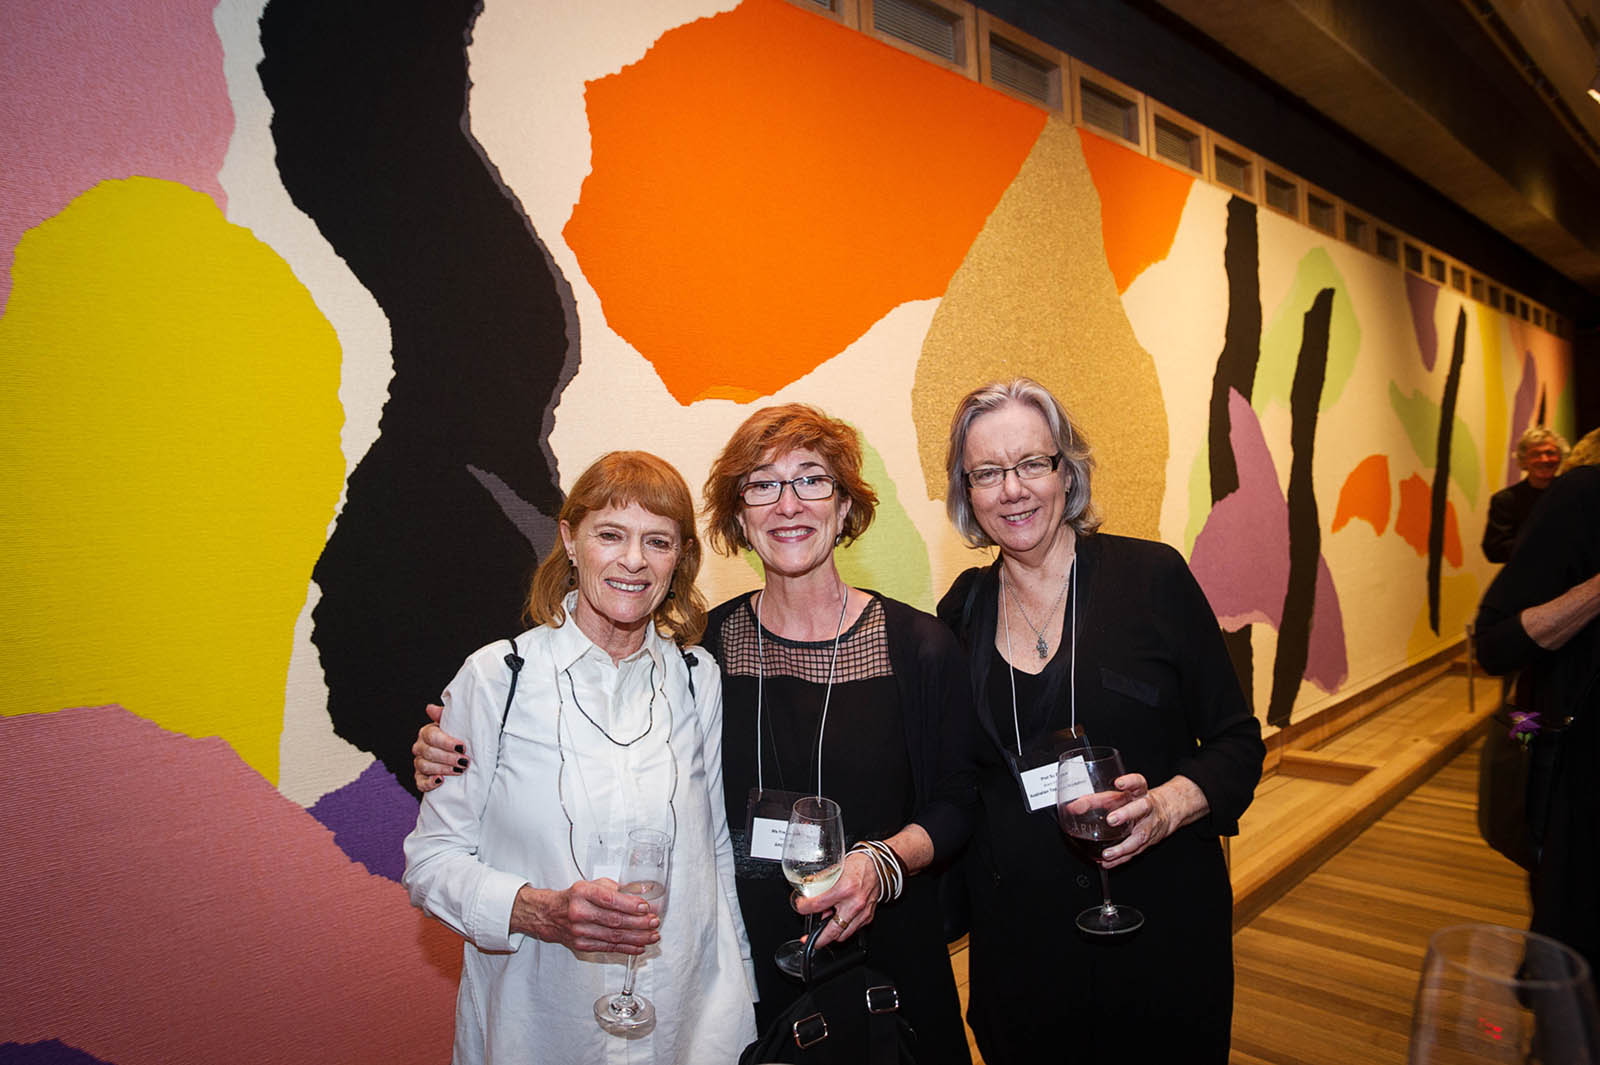 Left to right: Janet Laurence, Fran Clark and Pro Vice Chancellor Su Baker AM at the Utzon Room, Sydney Opera House. Photo: Petri Kurkaa